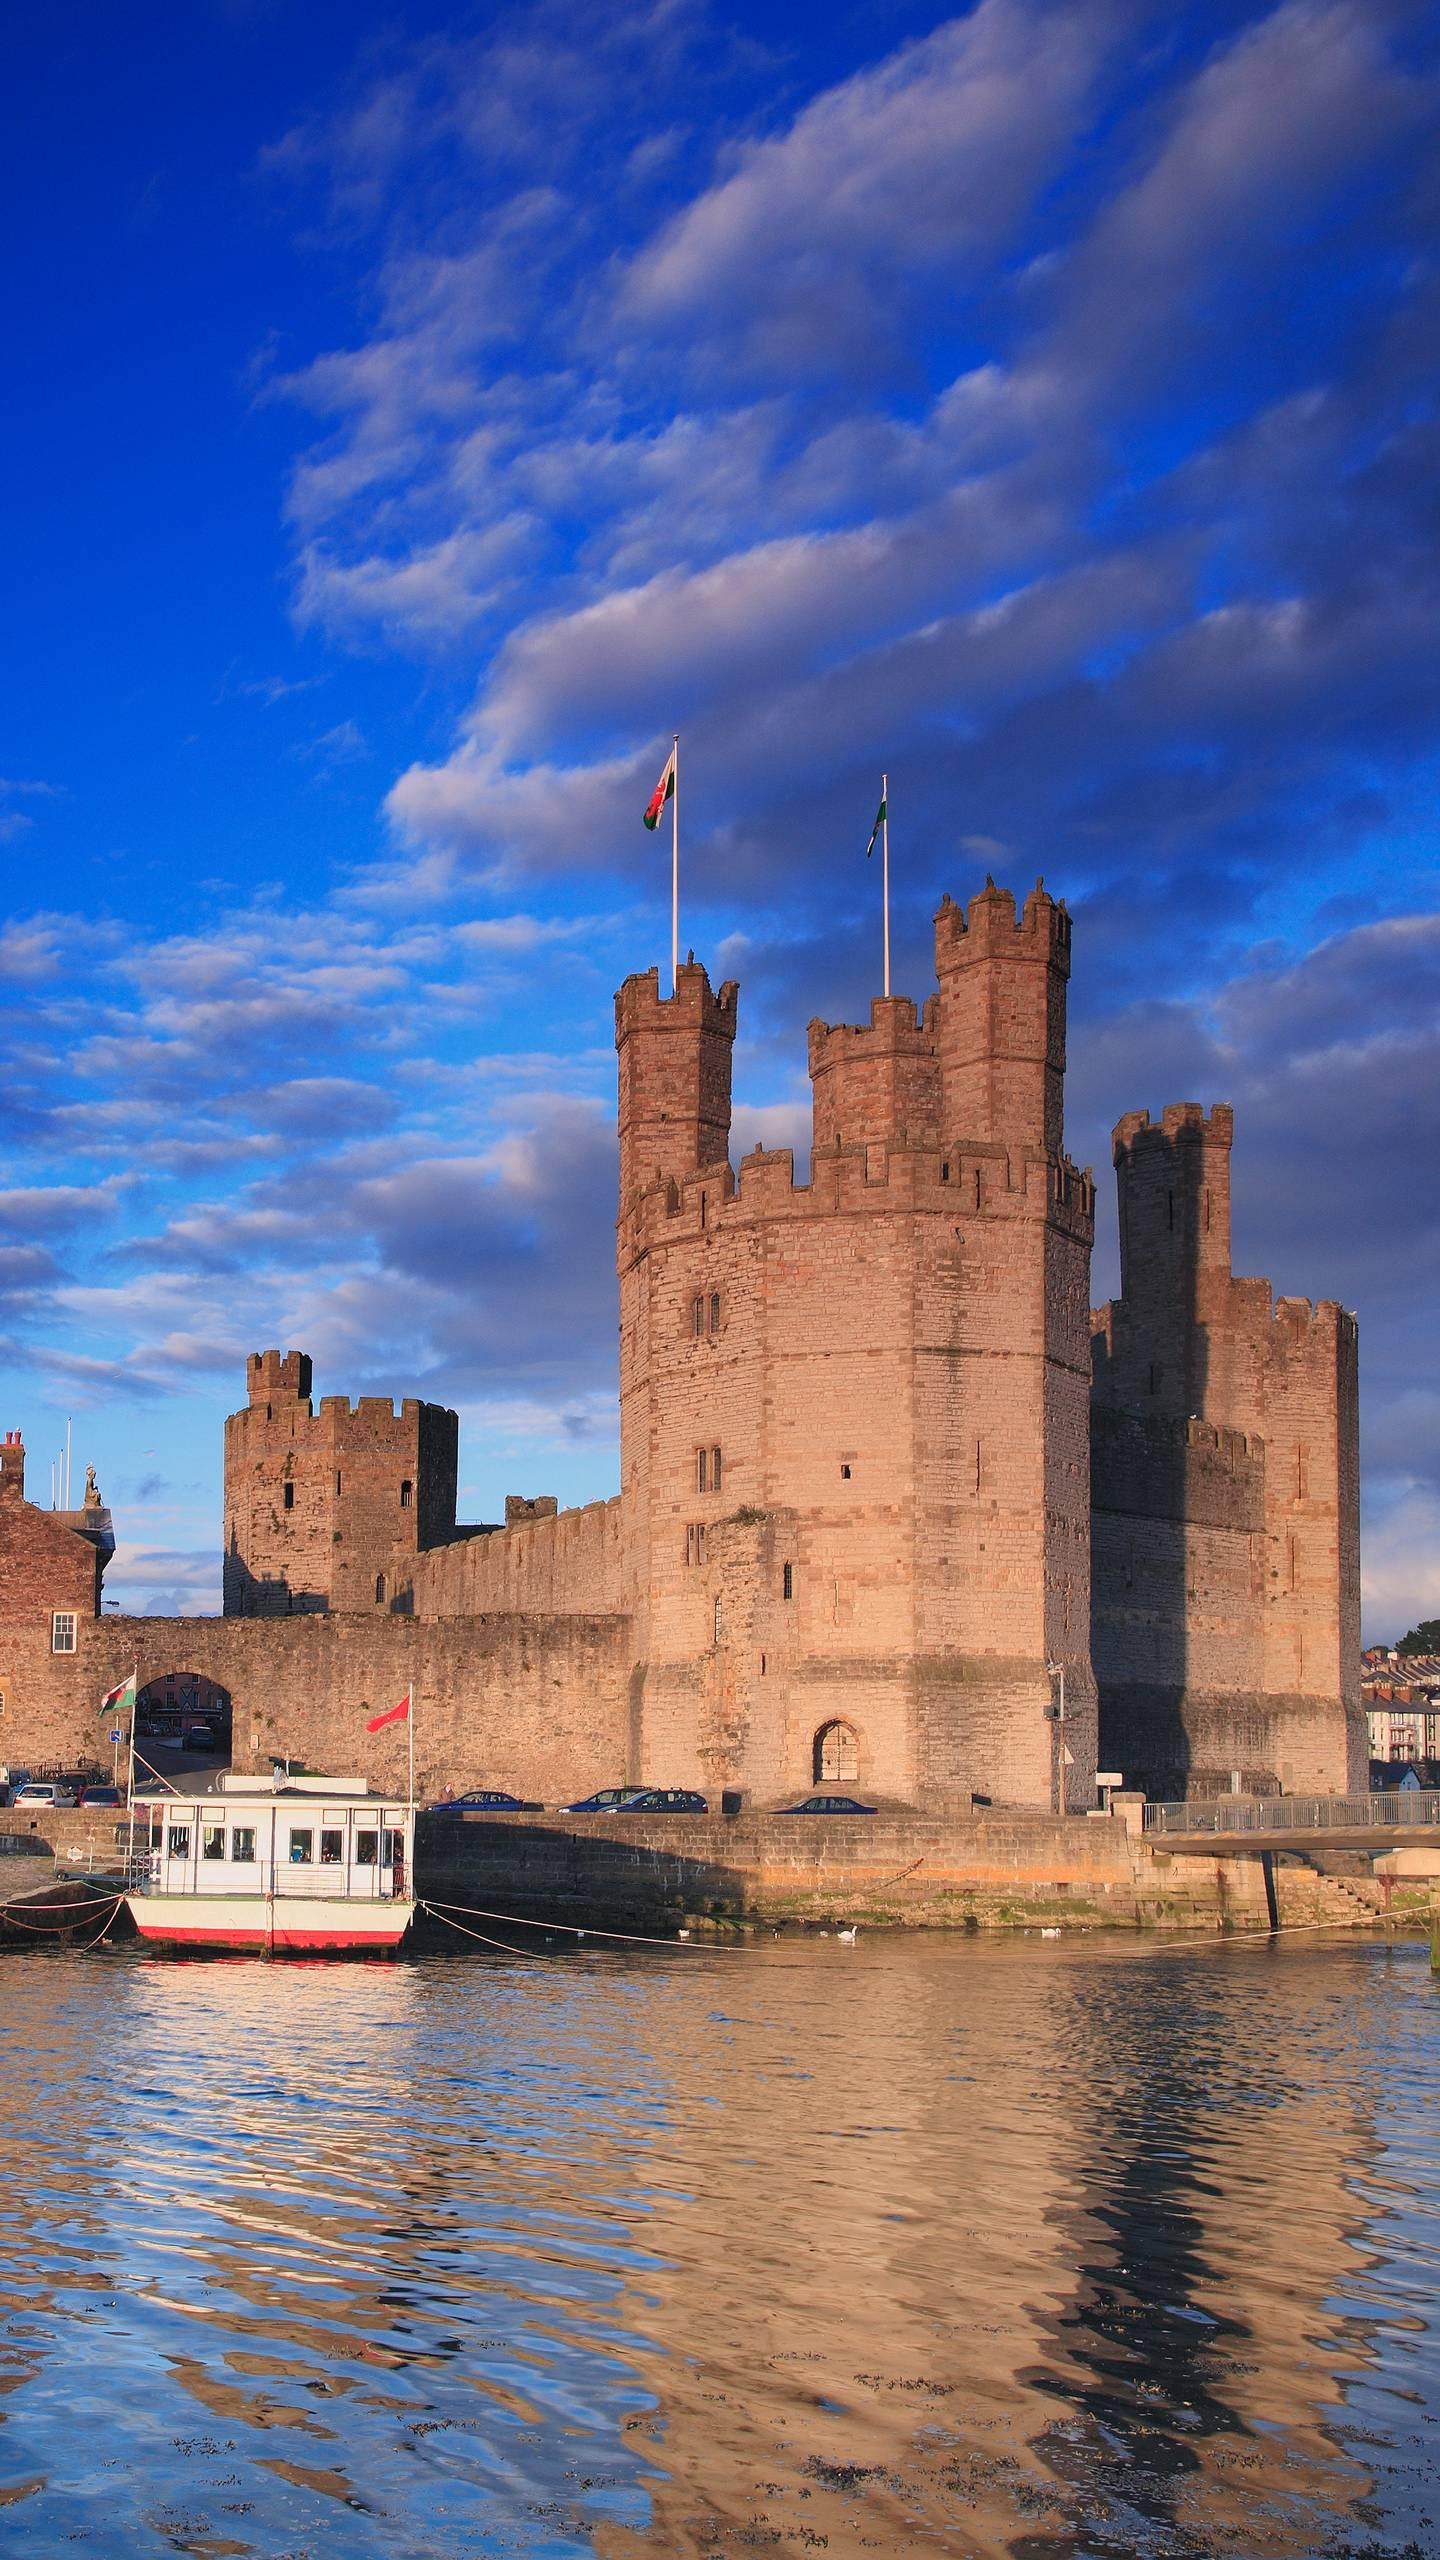 Not to be missed by the English castle. These beautiful castles are a true portrayal of British history.